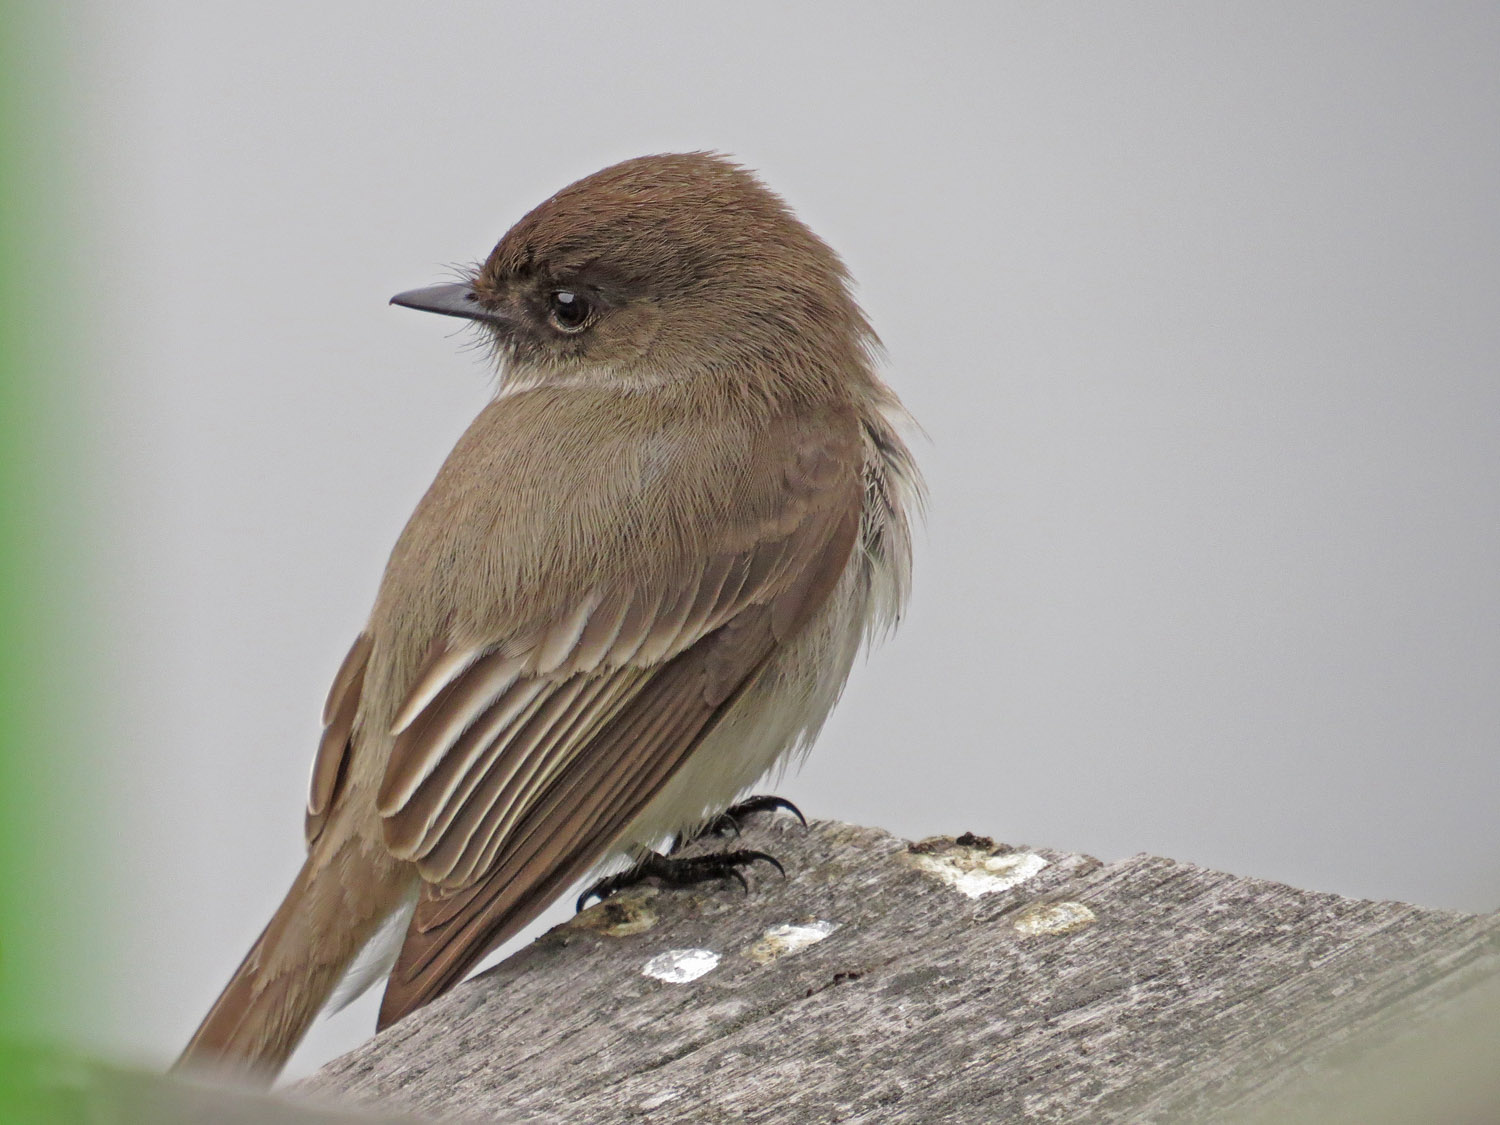 Eastern phoebe, March 31, 2015